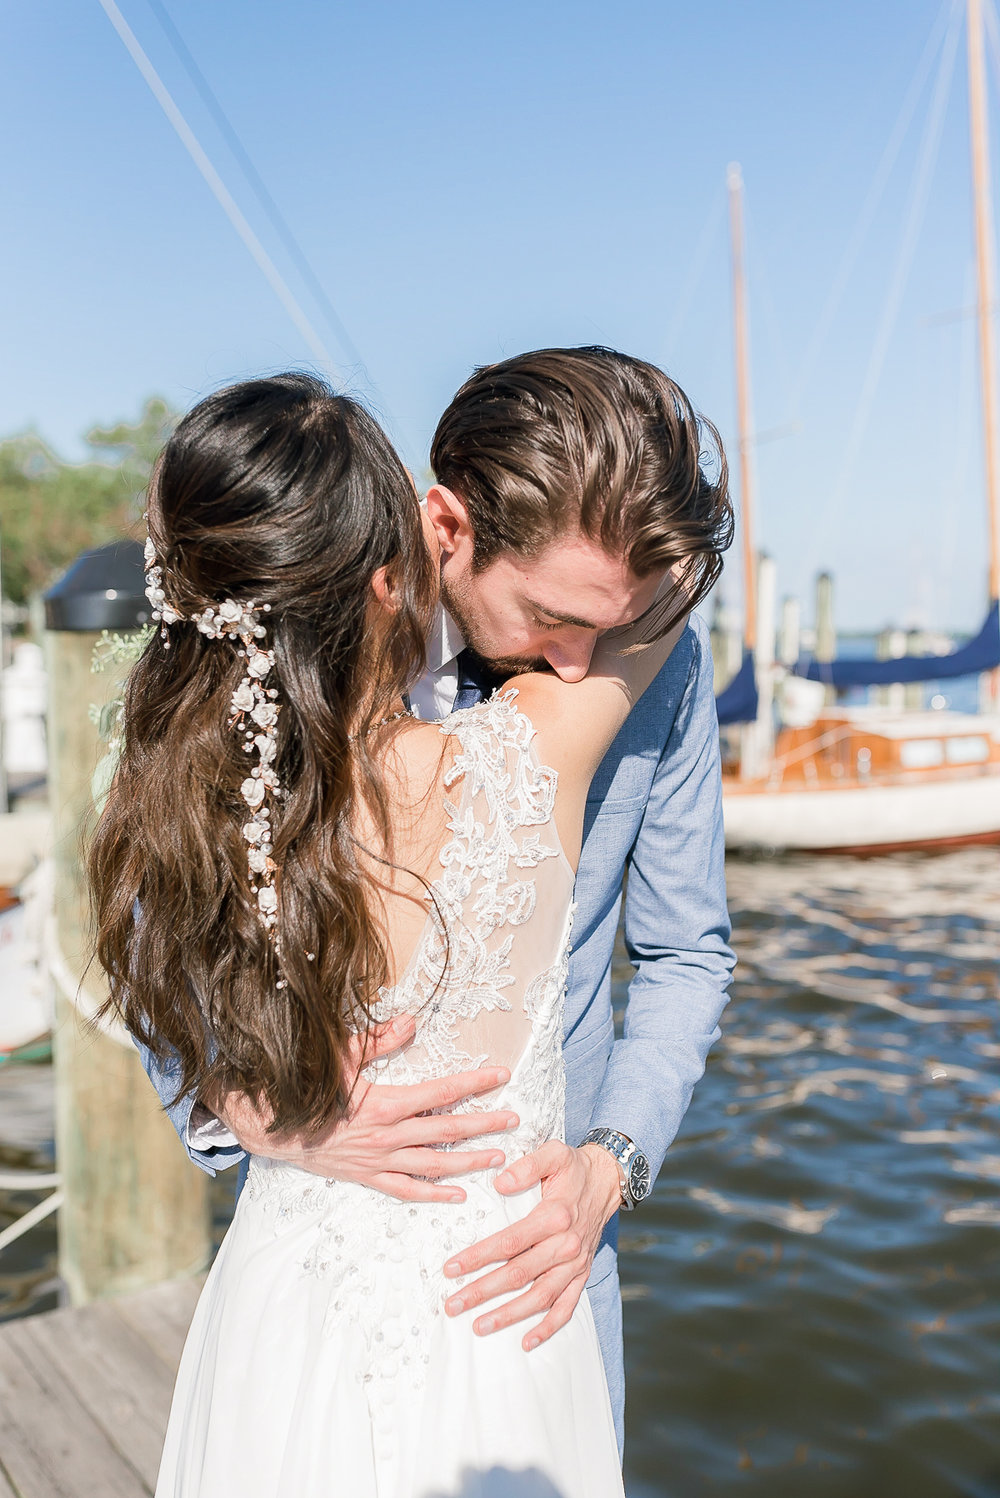 MD-Annapolis-Intimate-Wedding-Elopement-Waterfront-Bride-Groom-Portraits-38.jpg